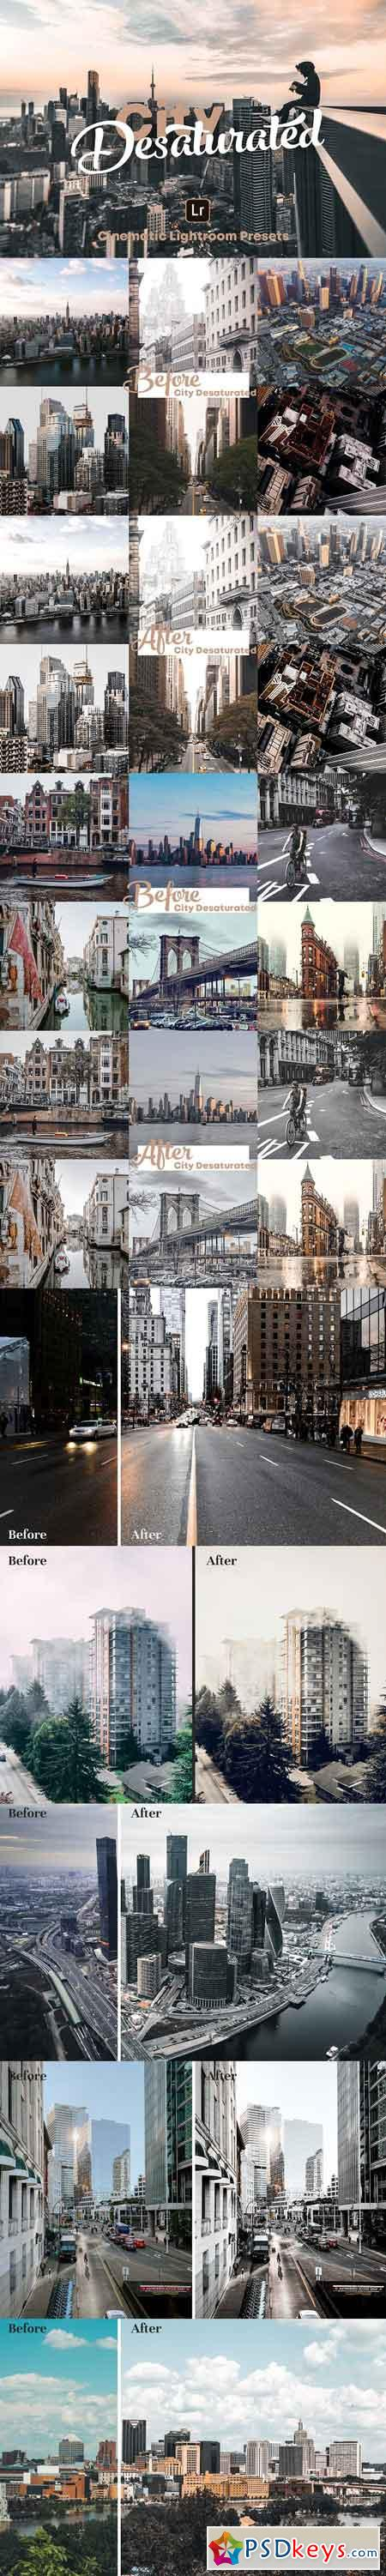 City Desaturated - Lightroom Presets 3064984